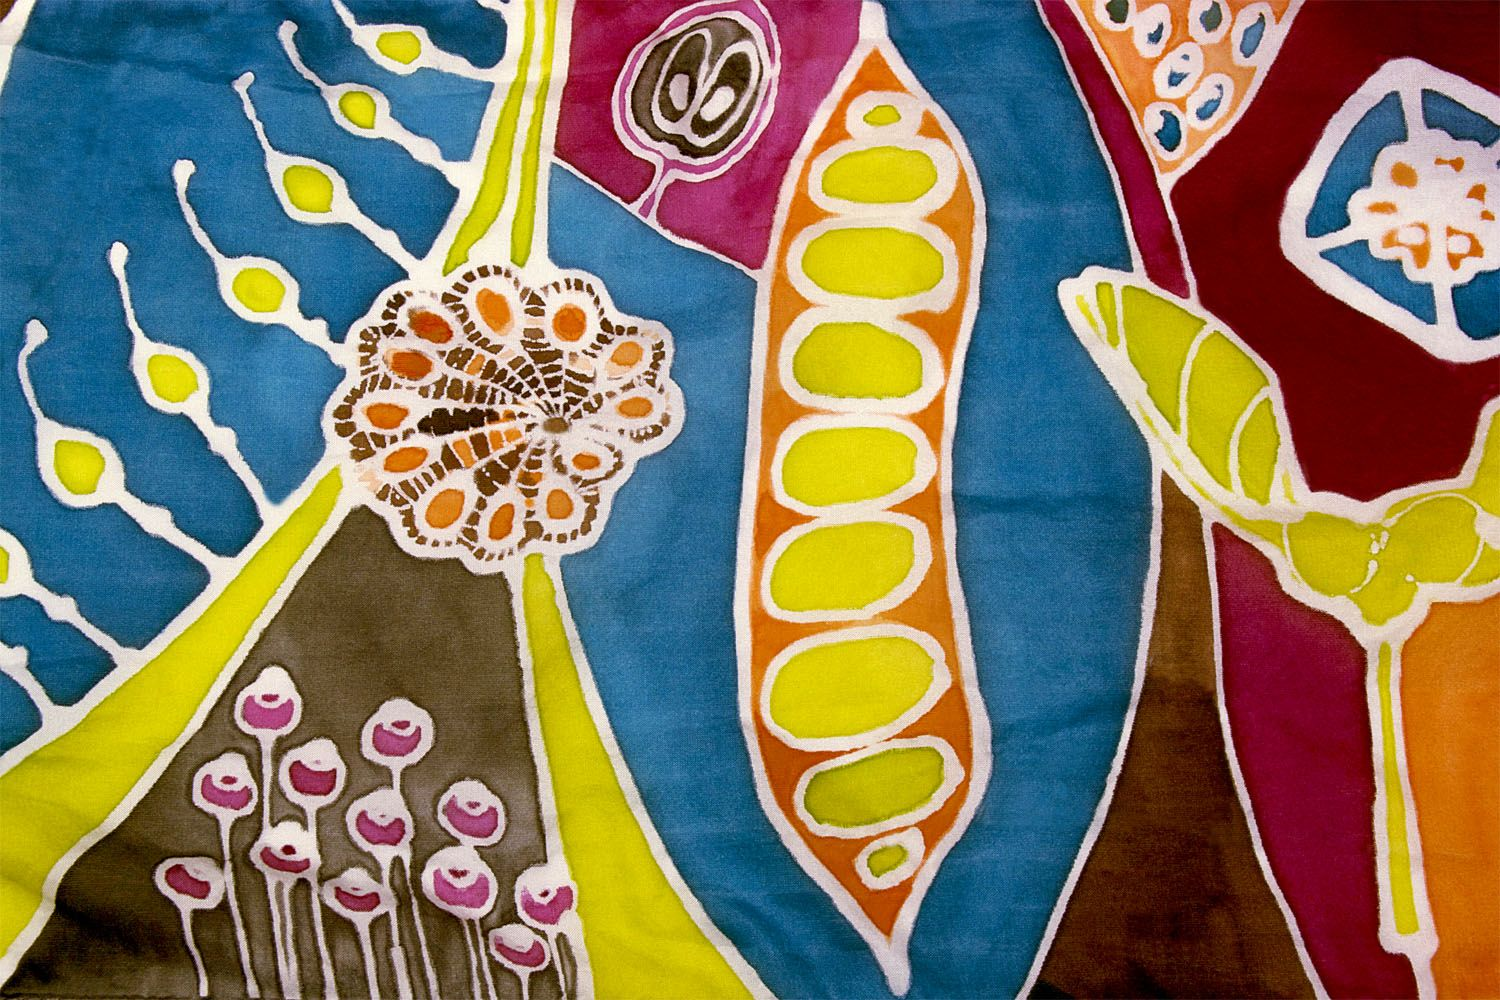 Hand-painted silk scarf depicting seeds and pods, by Adriana Mederos for Guatopo www.aquatrogallery.com